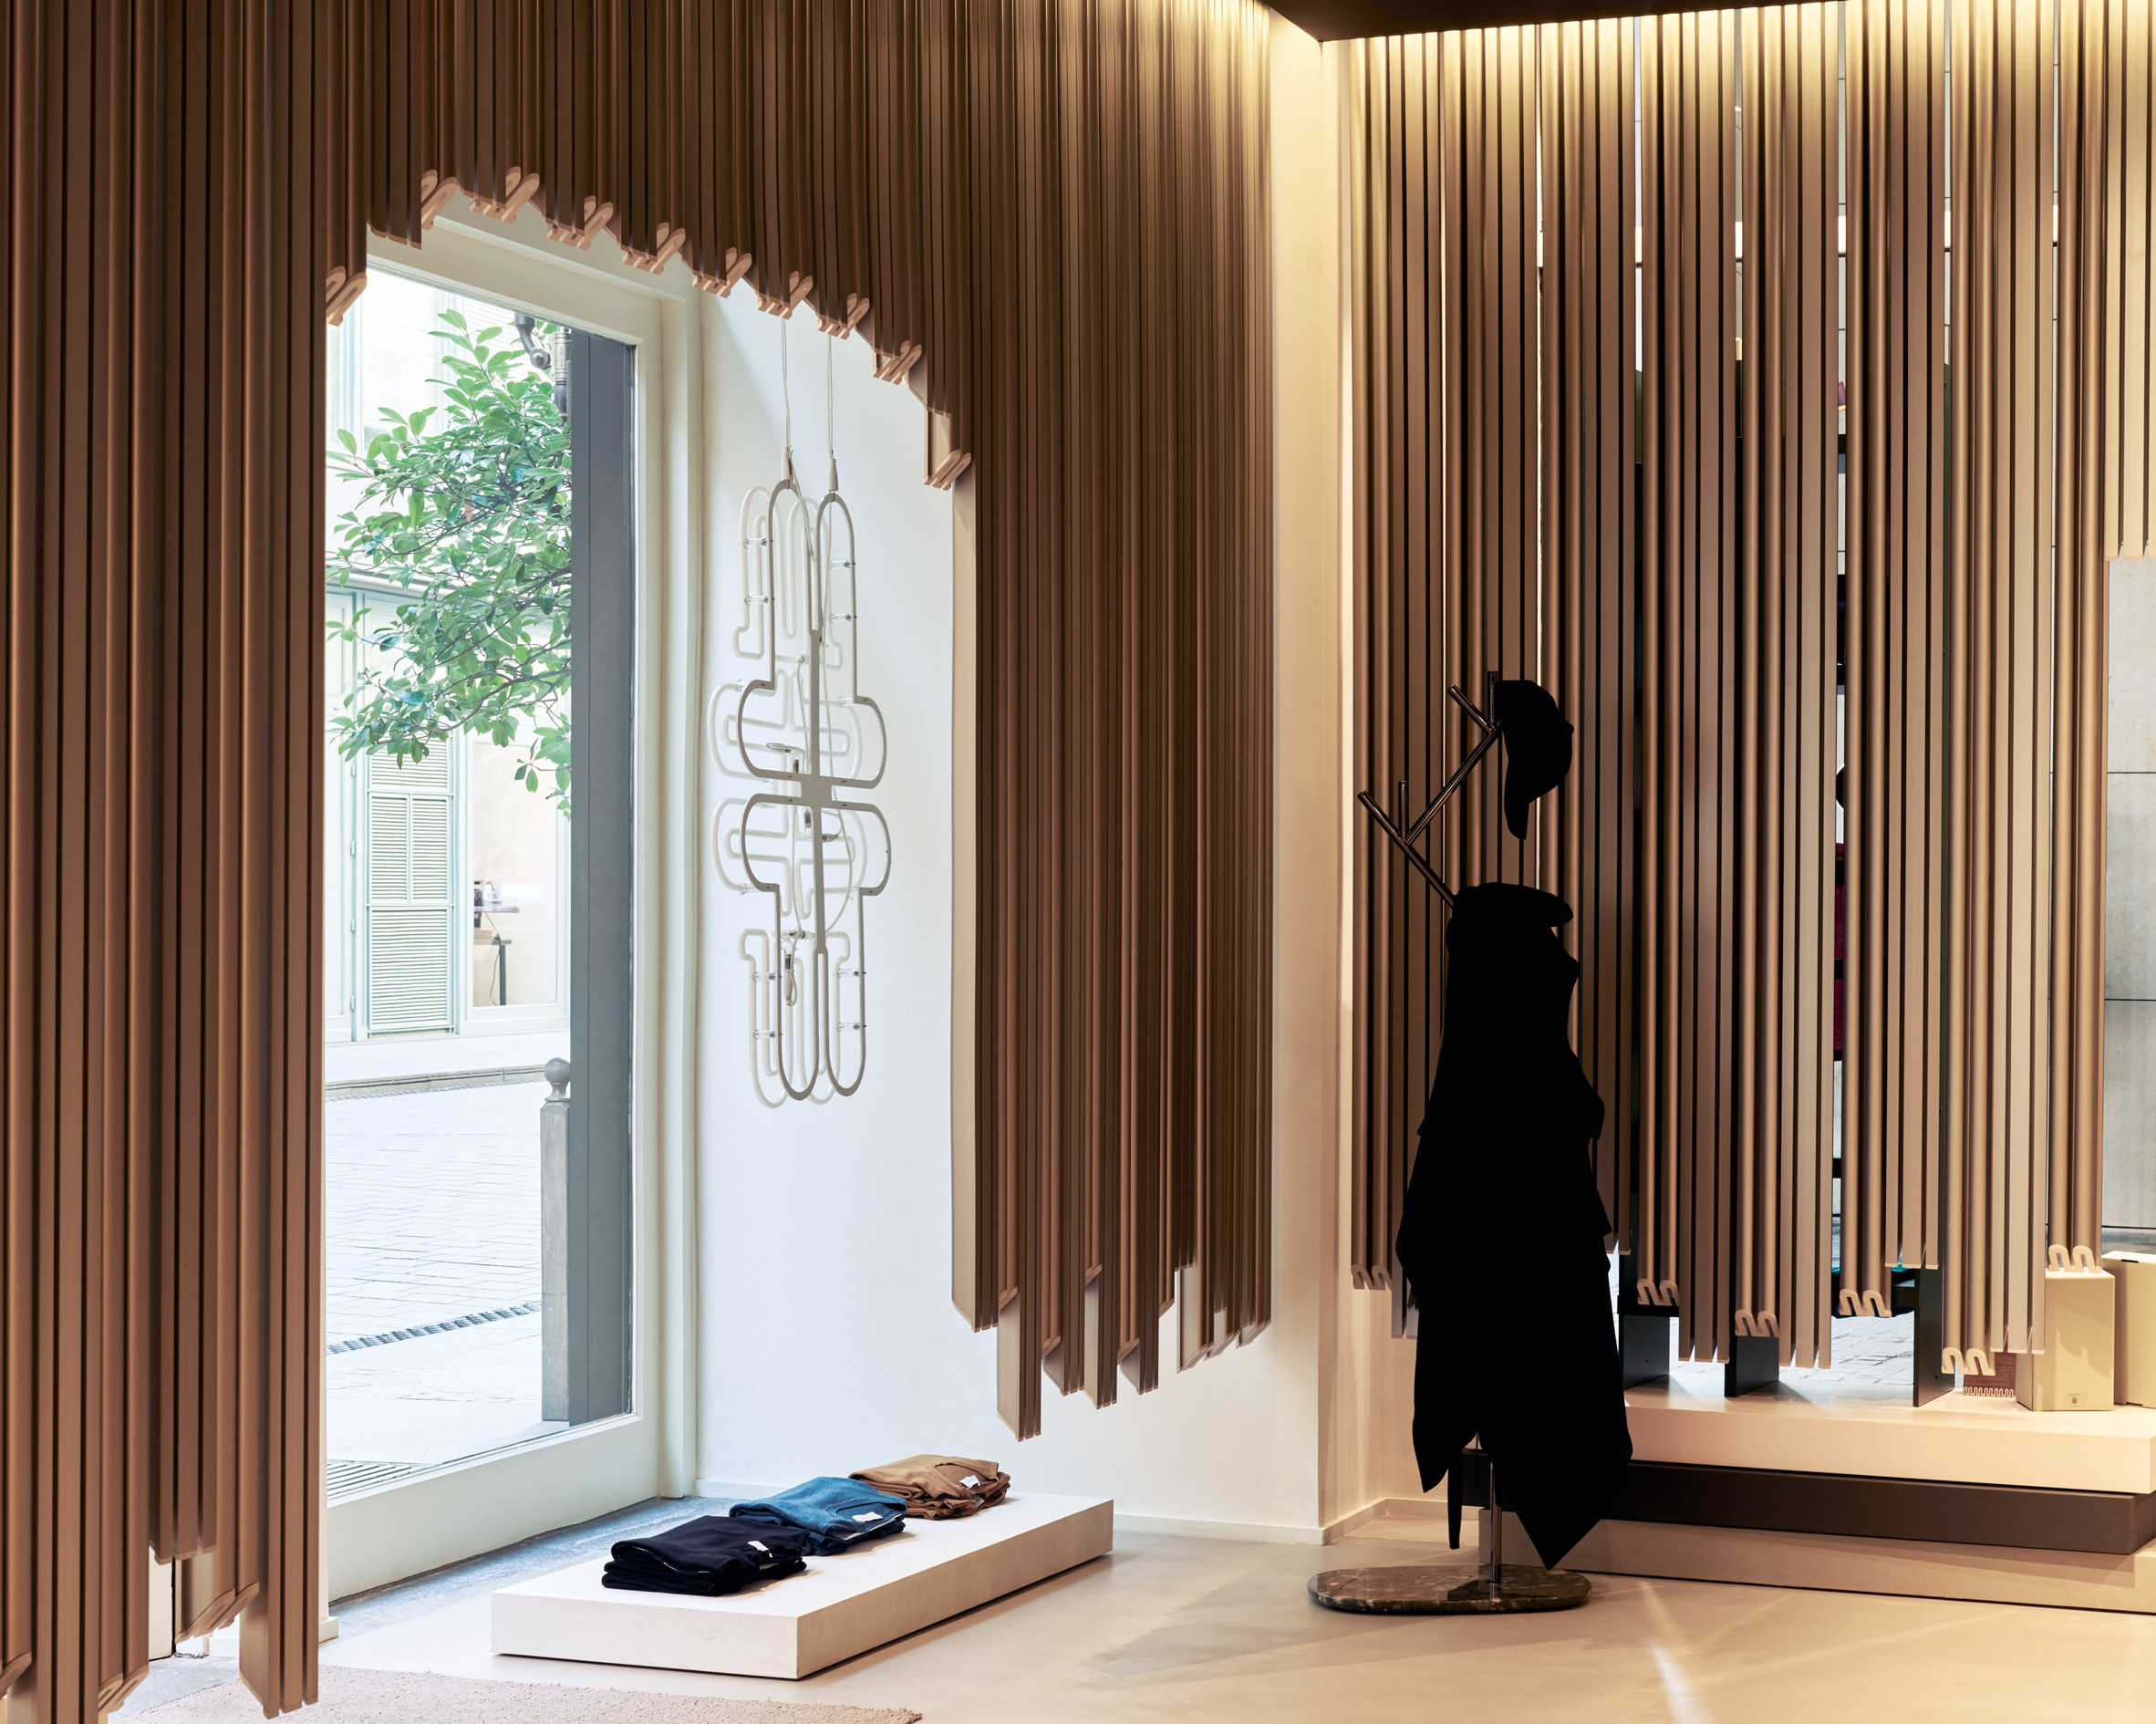 La Manufacture boutique in Paris